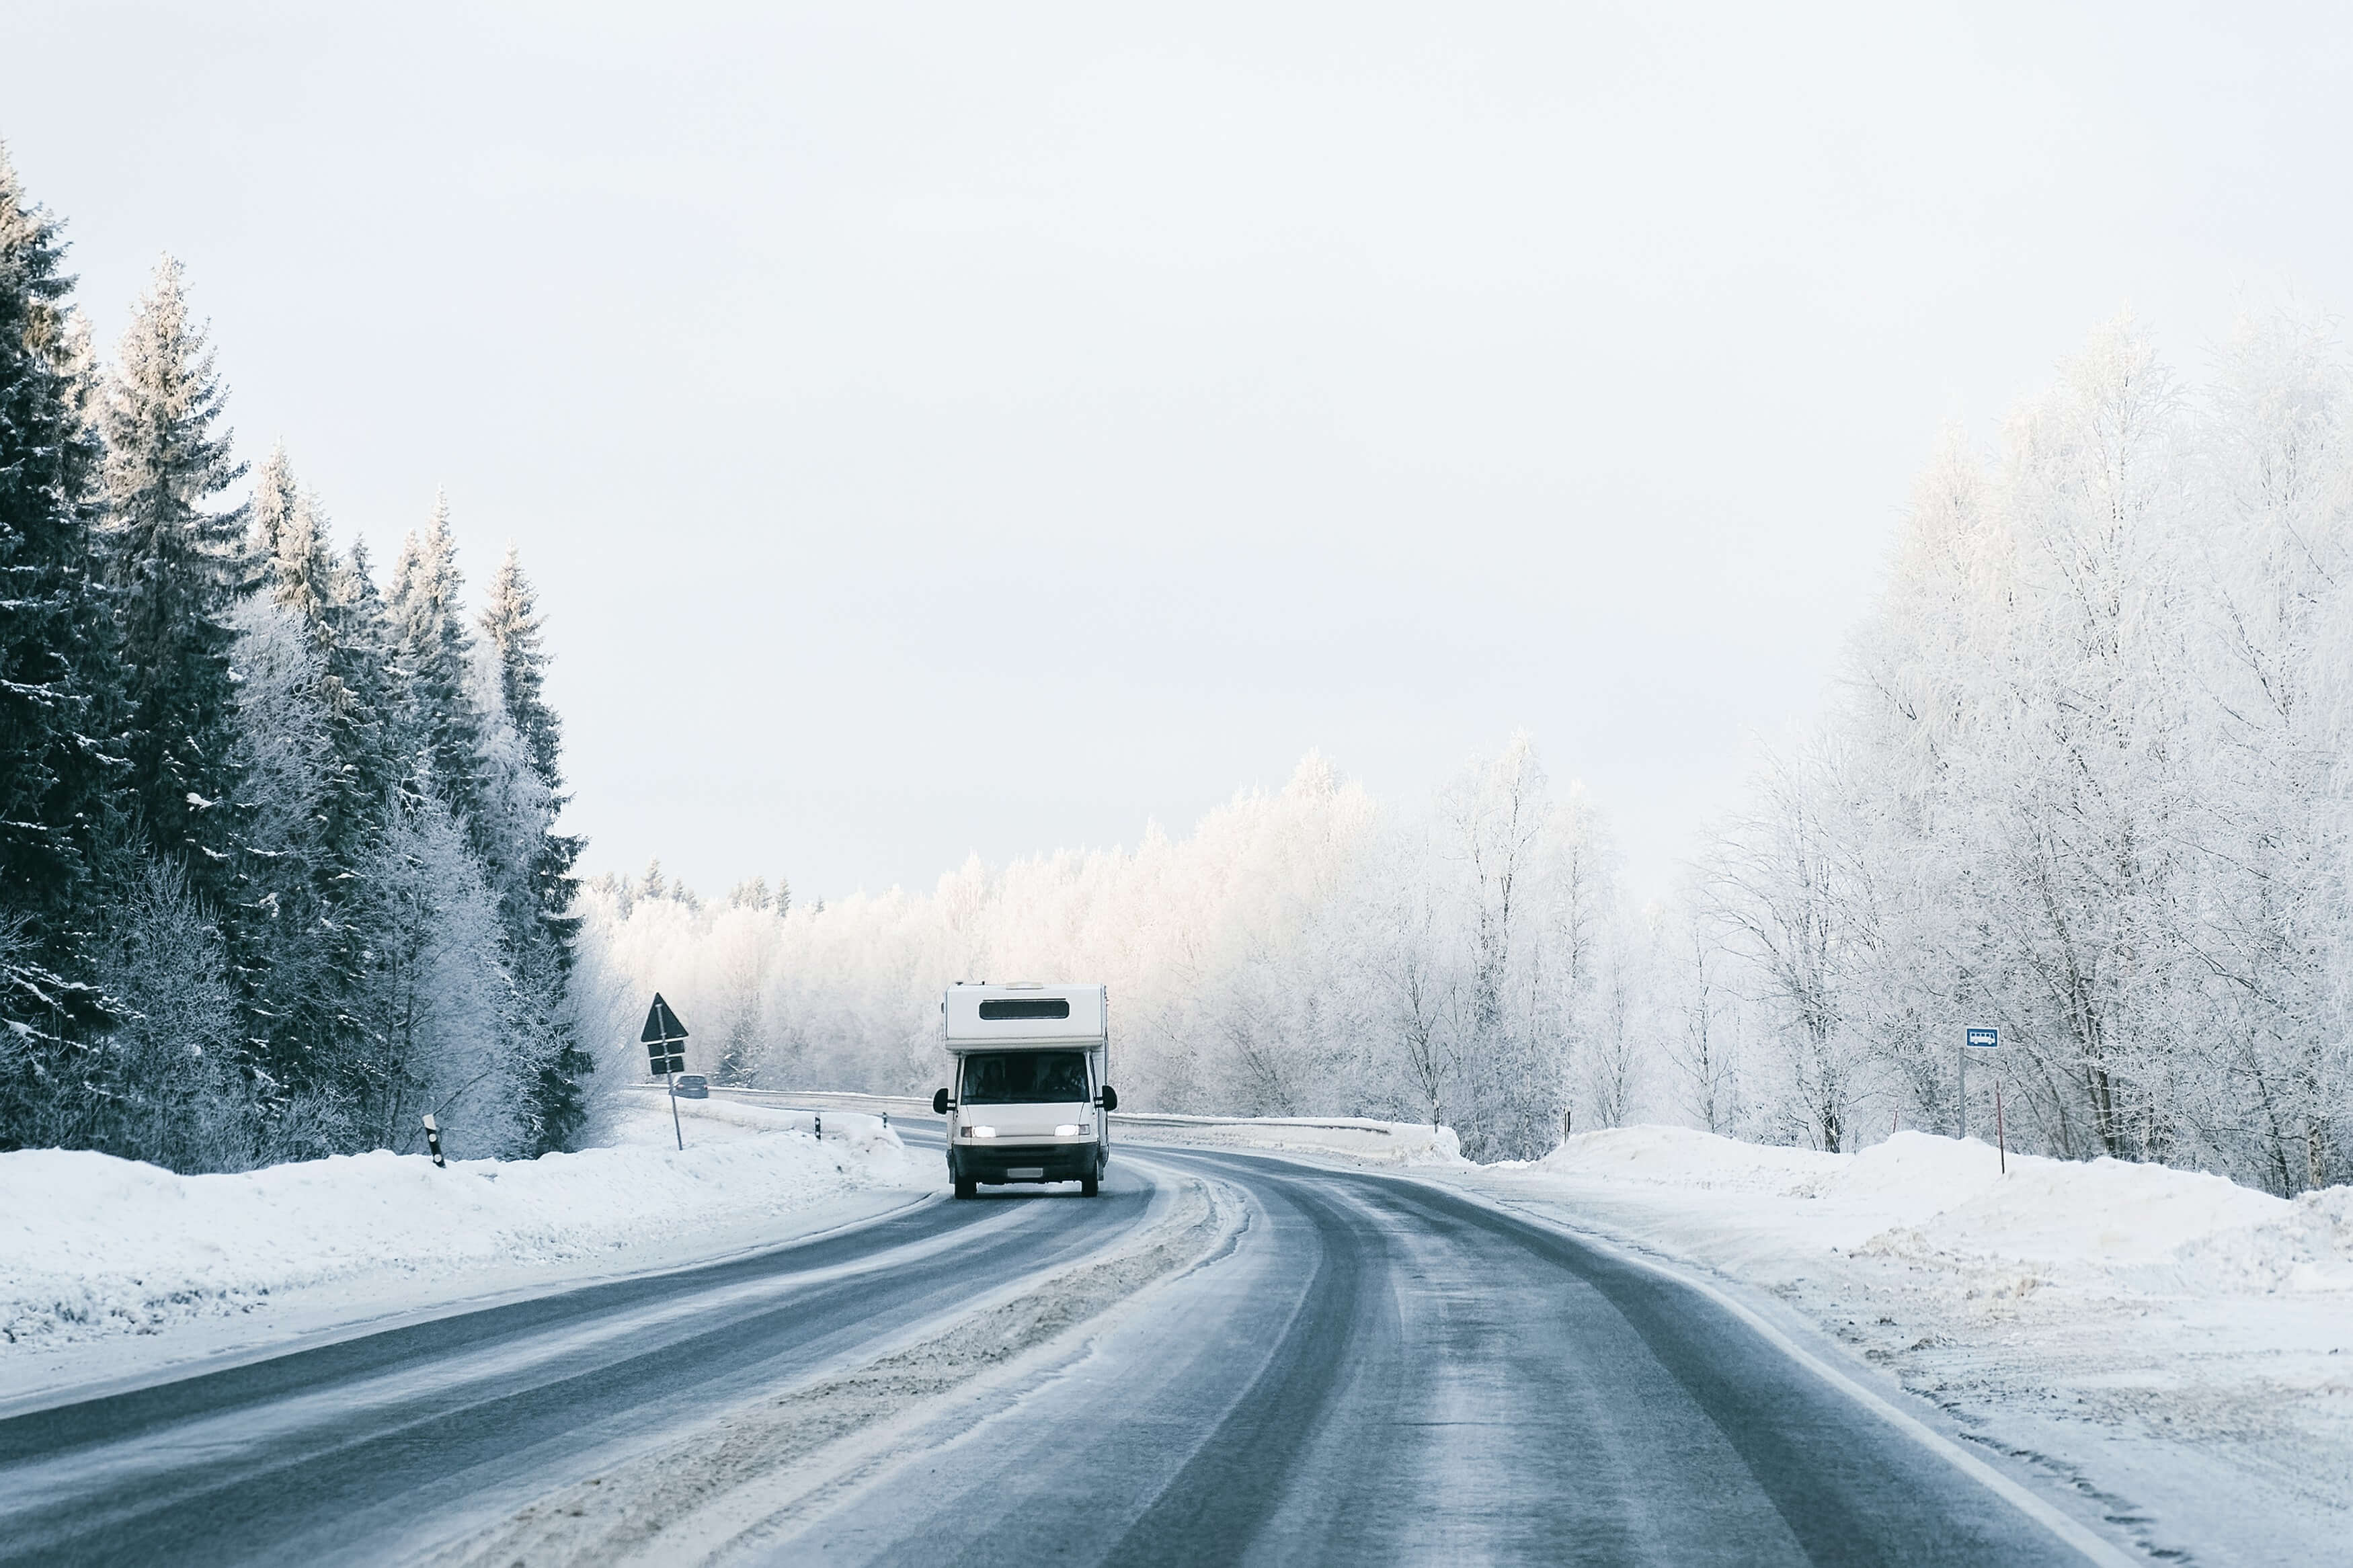 Winter RV Trip? Be Prepared!